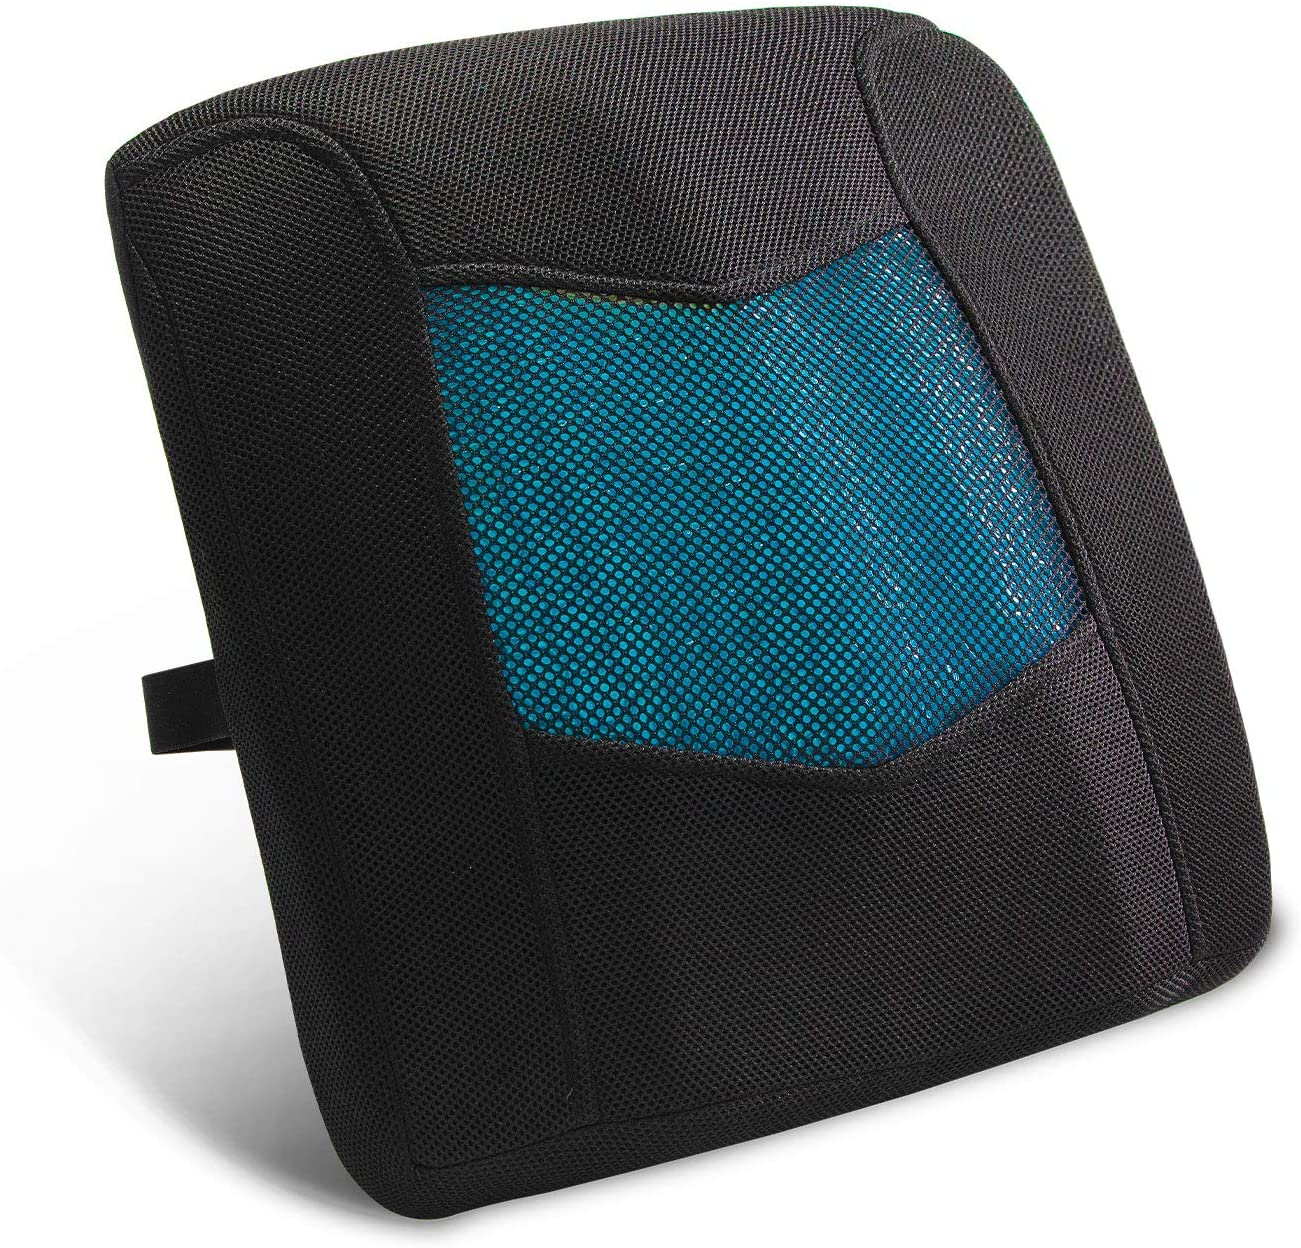 Memory Foam Lumbar Support Back Cushion with 3D Mesh Cover and Cooling Gel Balanced Firmness Designed for Lower Back Pain Relief- Ideal Back Pillow for Computer/Office Chair, Car Seat, Recliner